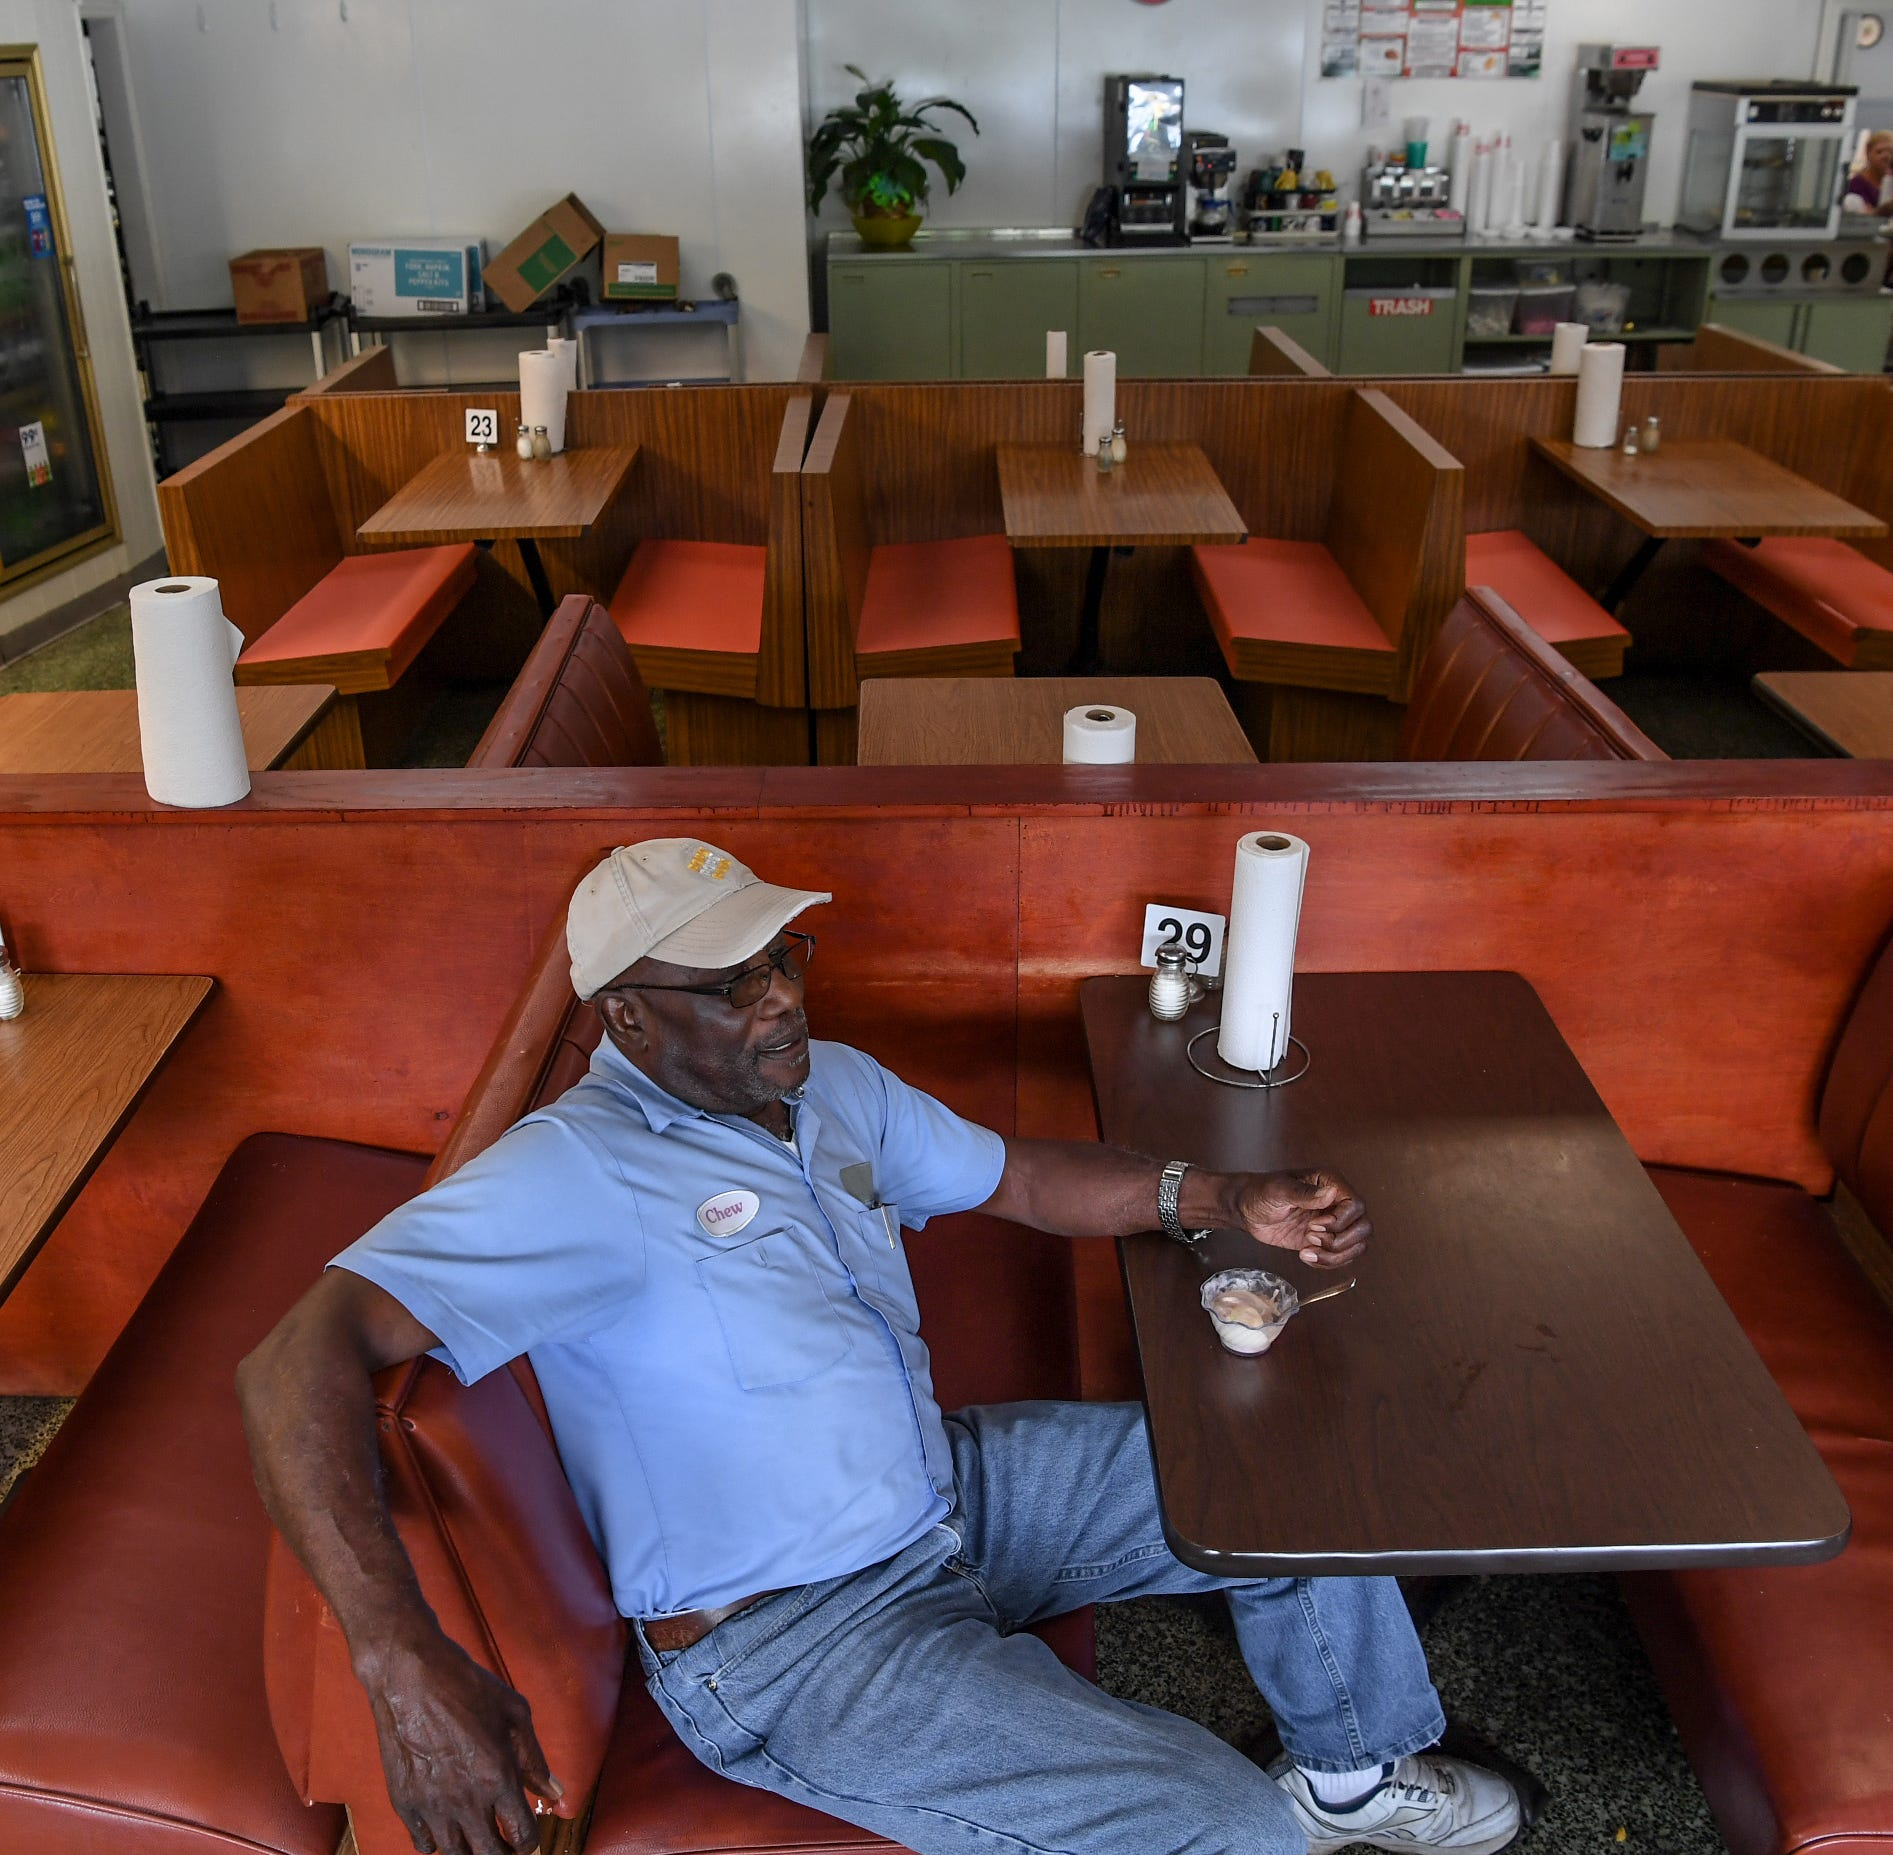 Herbert Workman of Winnsboro sits at the Barn Xpress cafeteria in Winnsboro on Monday. Workman was employed by Perry Ellis before Element electronics occupied the plant on state highway 321 in Winnsboro.  Element is winding down to close in October following tariffs on imported parts from China. Local leaders hope an appeal to make an exception for the tariff will help keep it open.